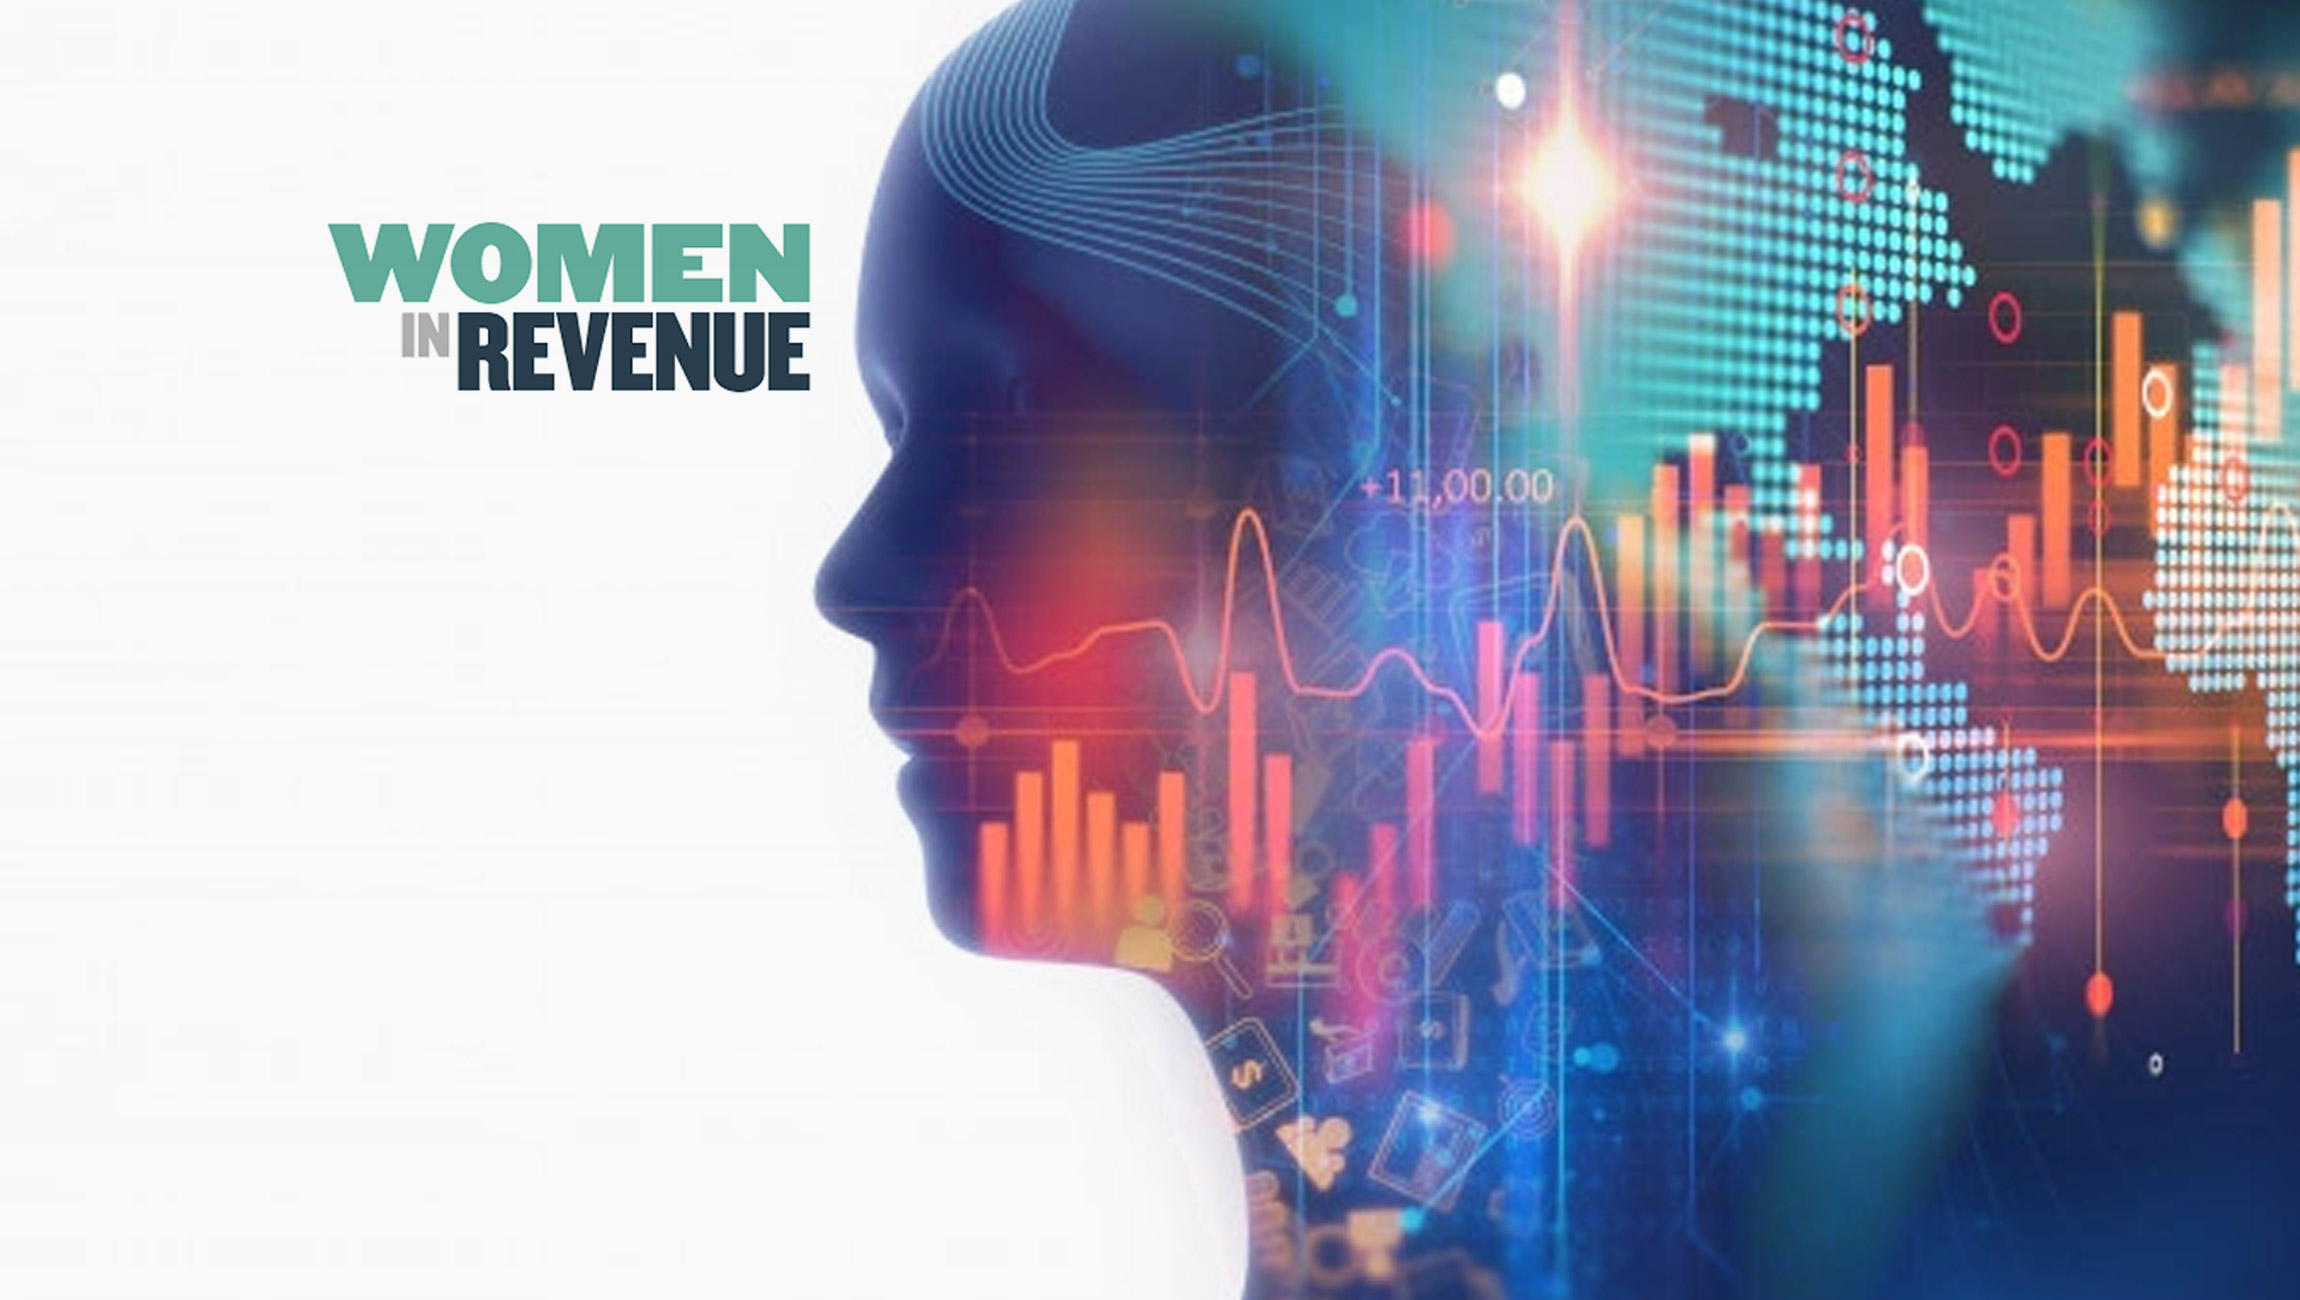 Mentorship and Compensation Transparency are Top Factors in Female Revenue Leaders' Success, Study Finds